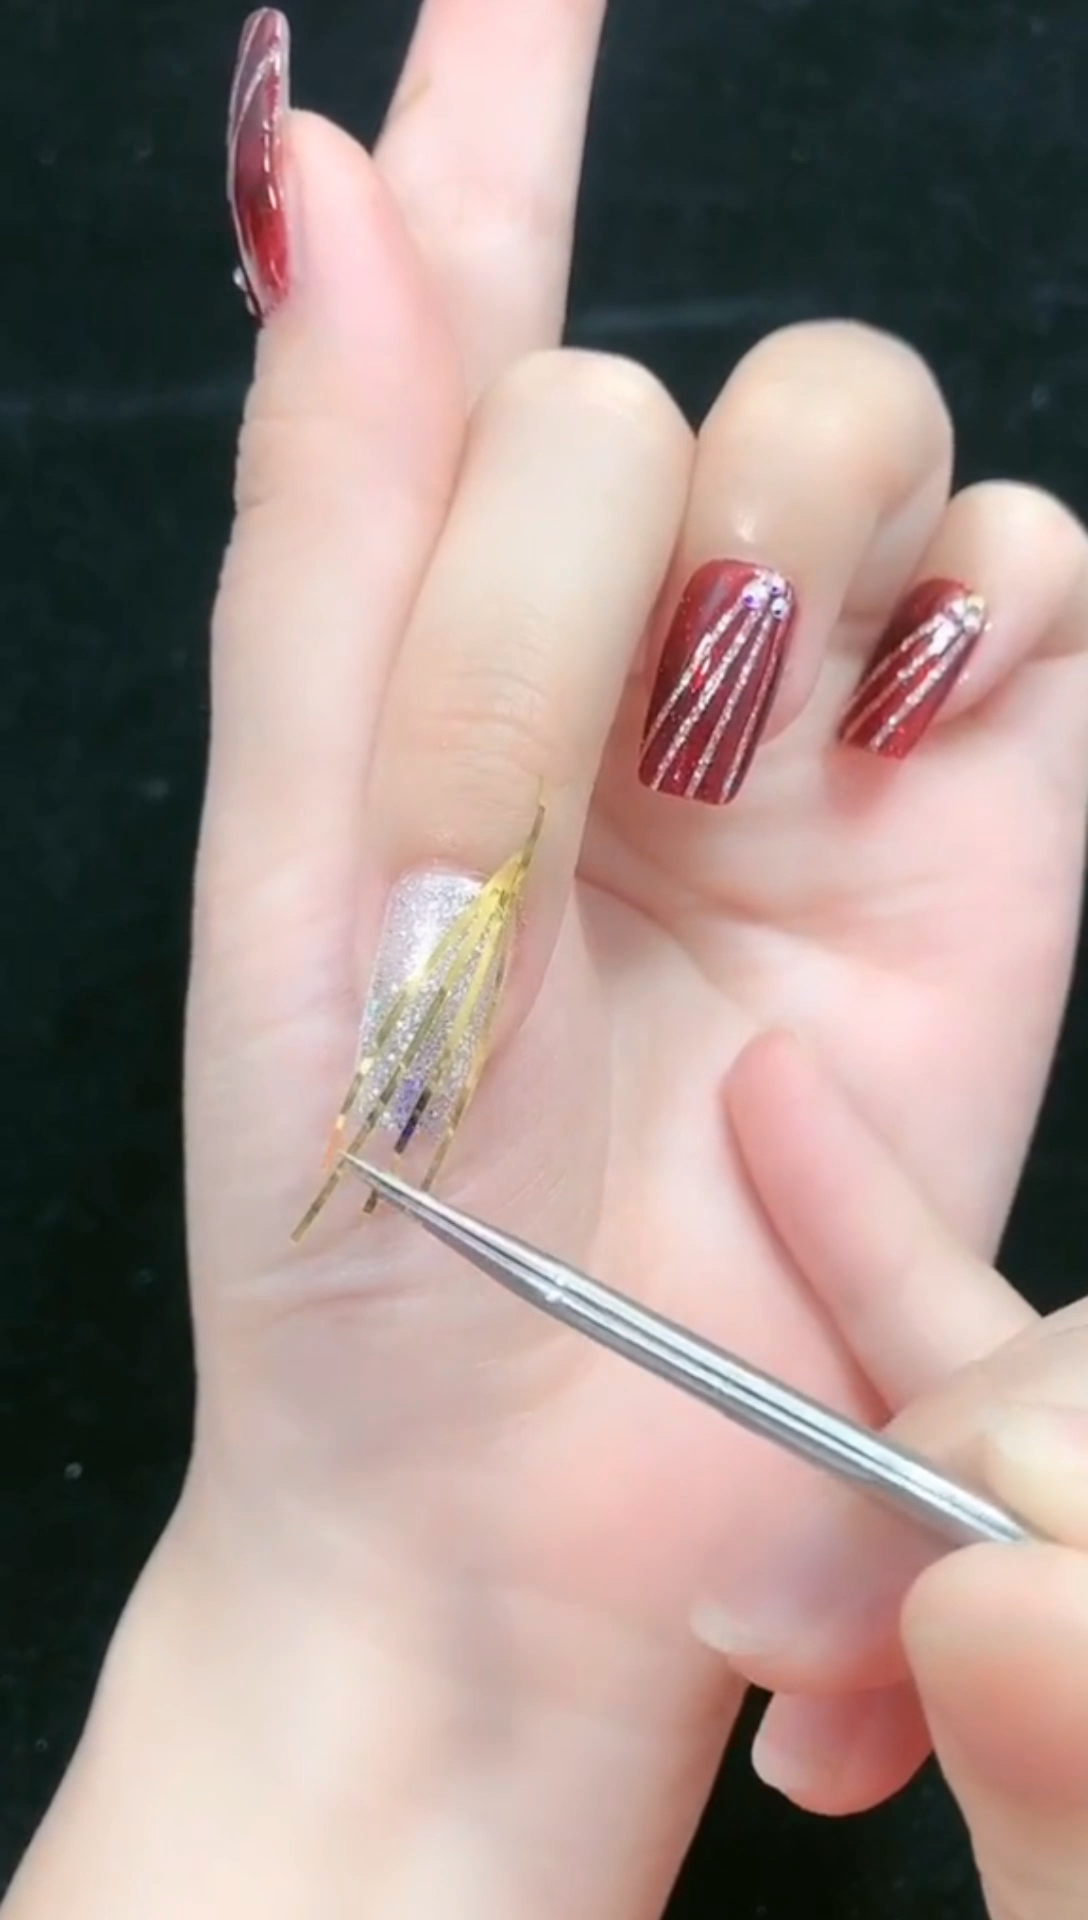 Do your own nail art